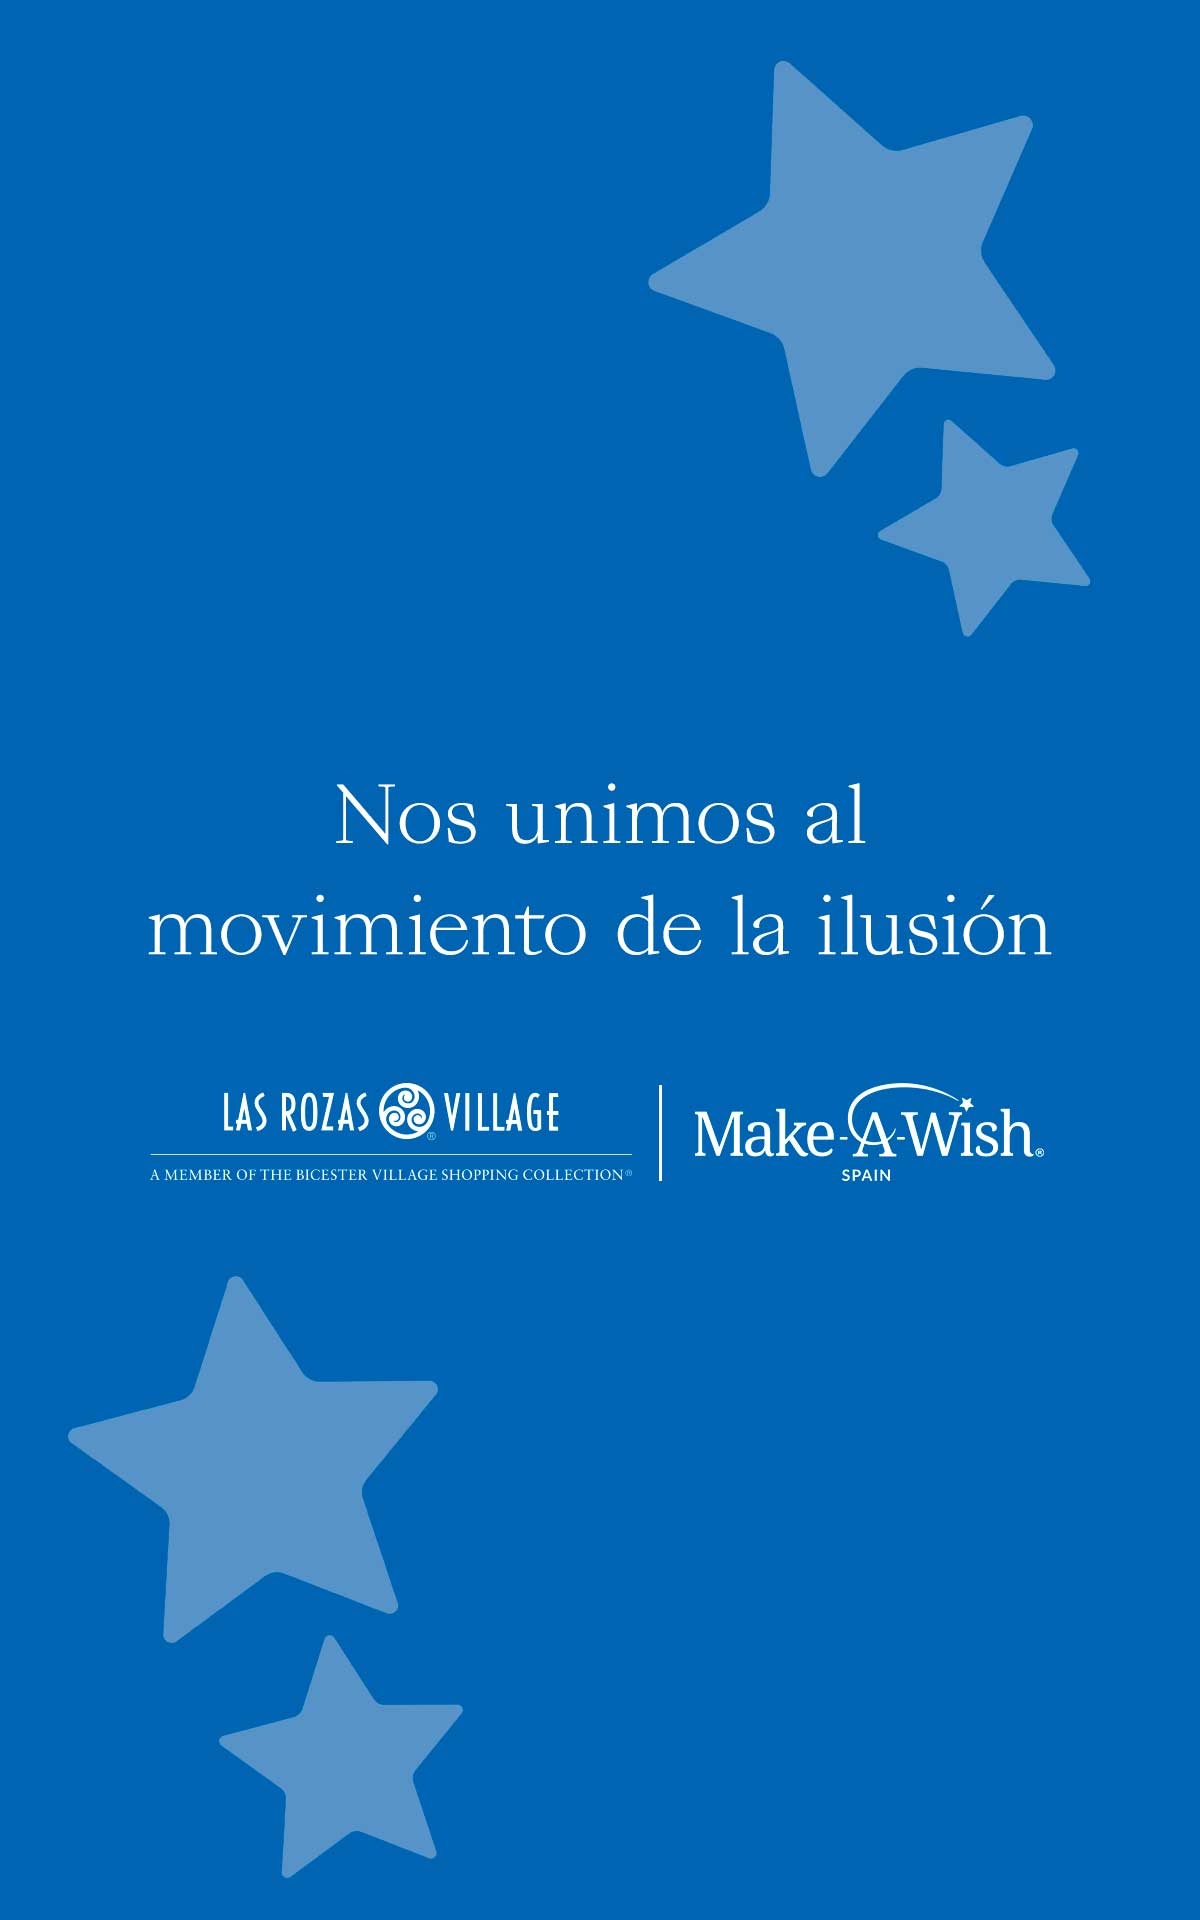 Nos unimos al movimiento de la ilusión con Make A Wish